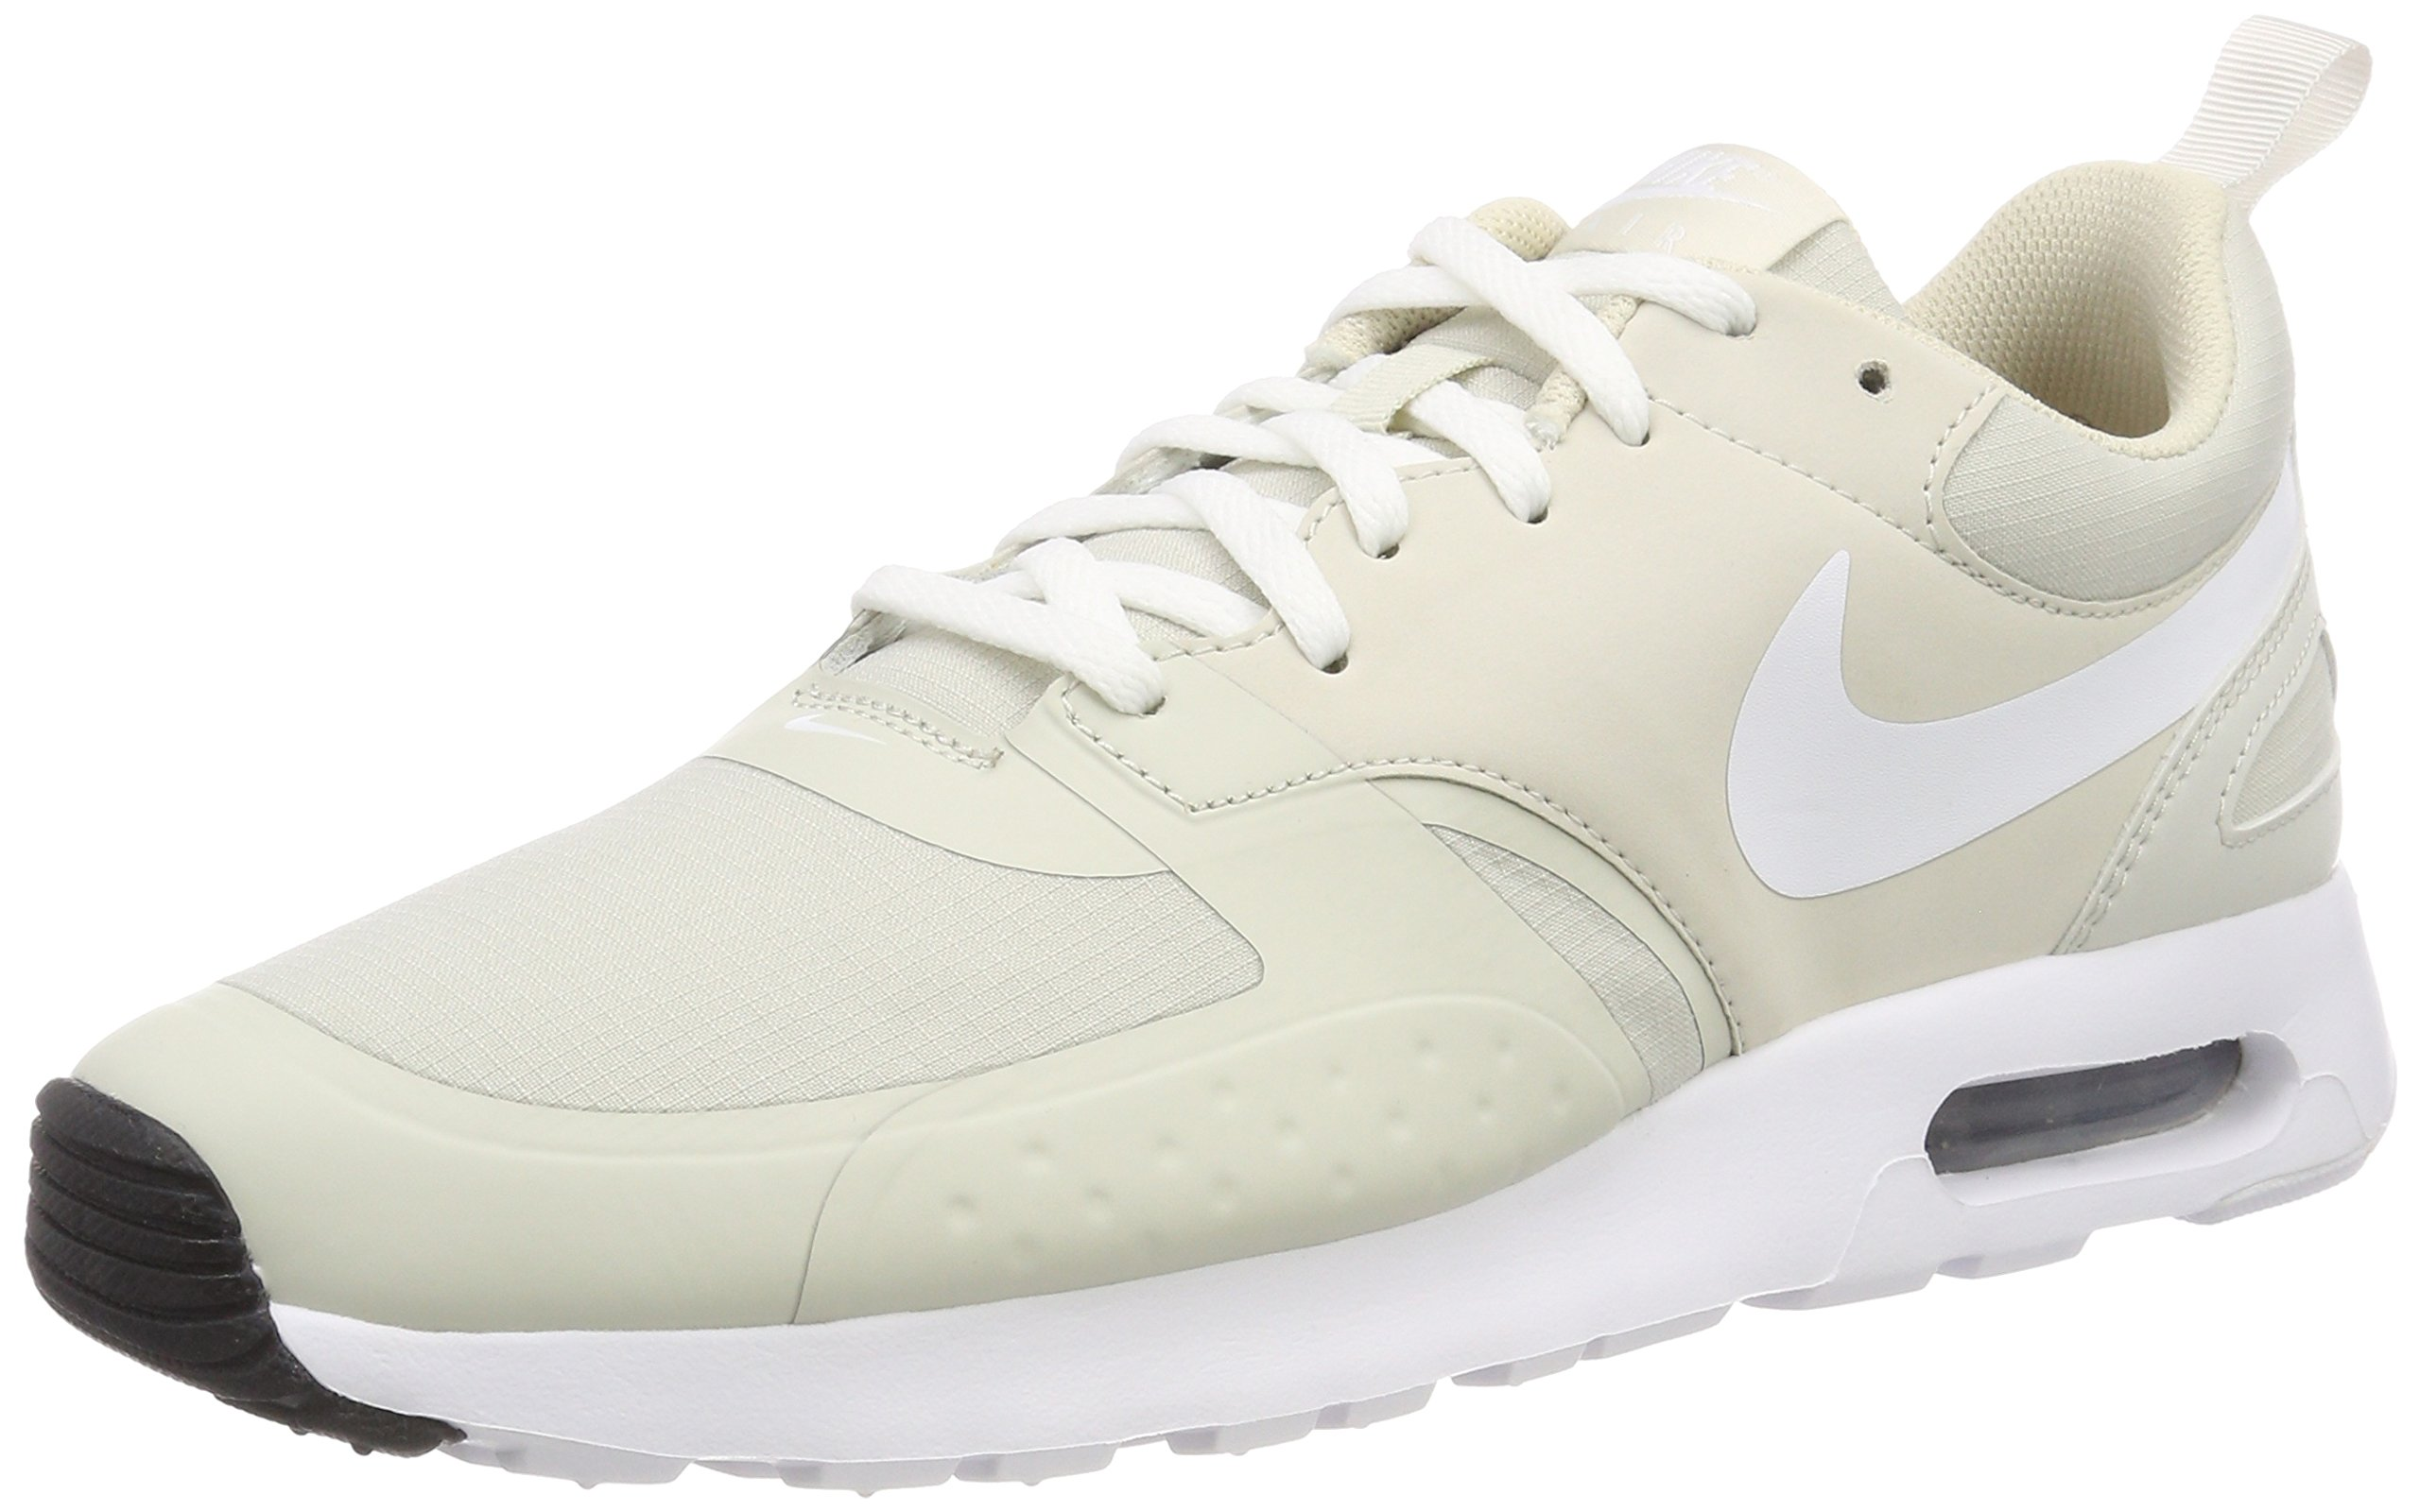 3a3ecb803d Galleon - NIKE Air Max Vision Mens Style : 918230-008 Size : 8 M US